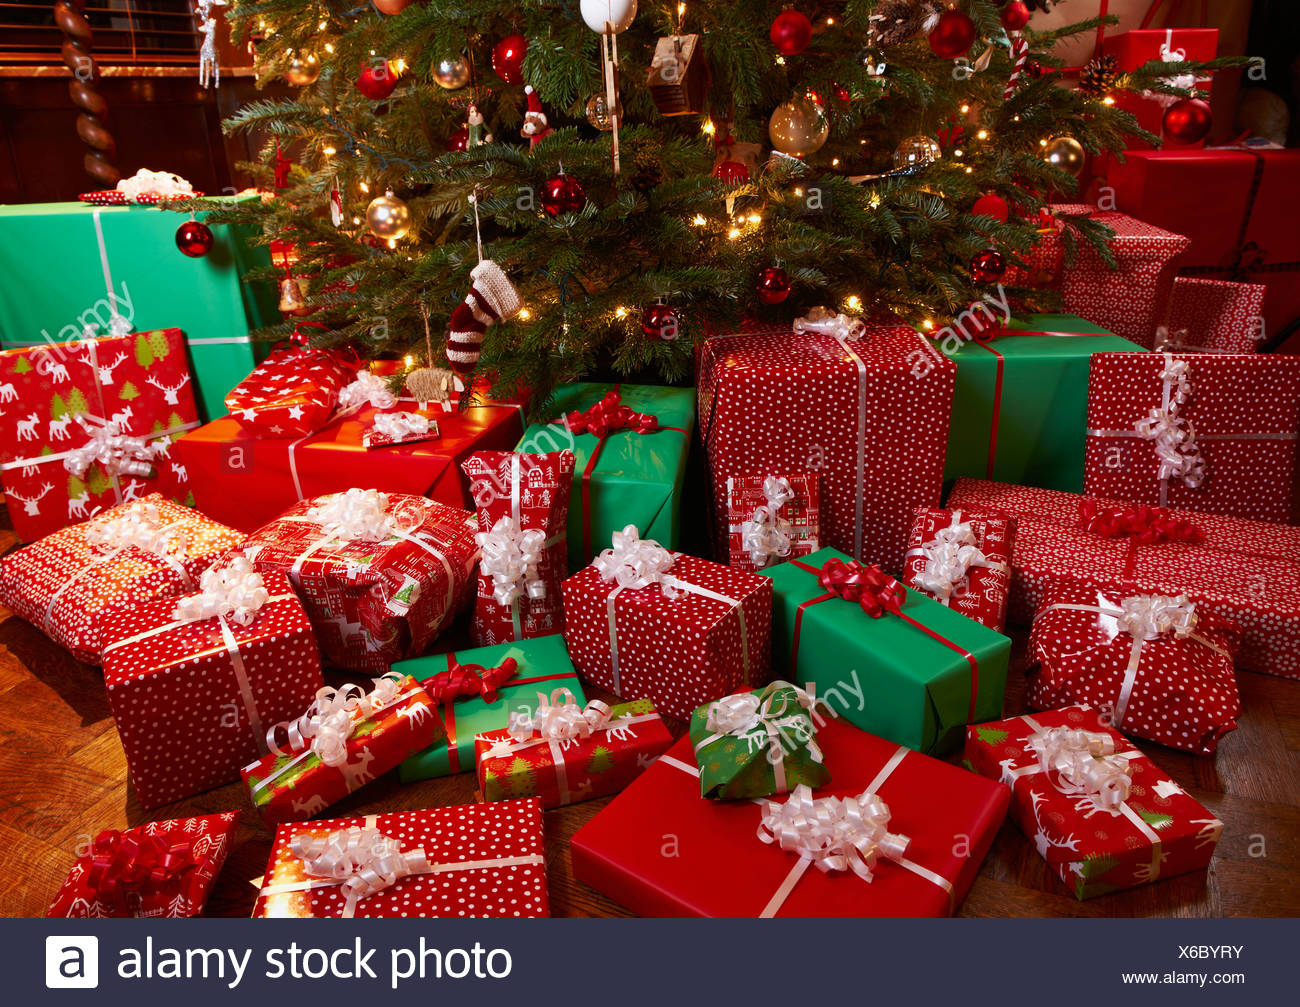 Christmas gifts under tree Stock Photo - Alamy